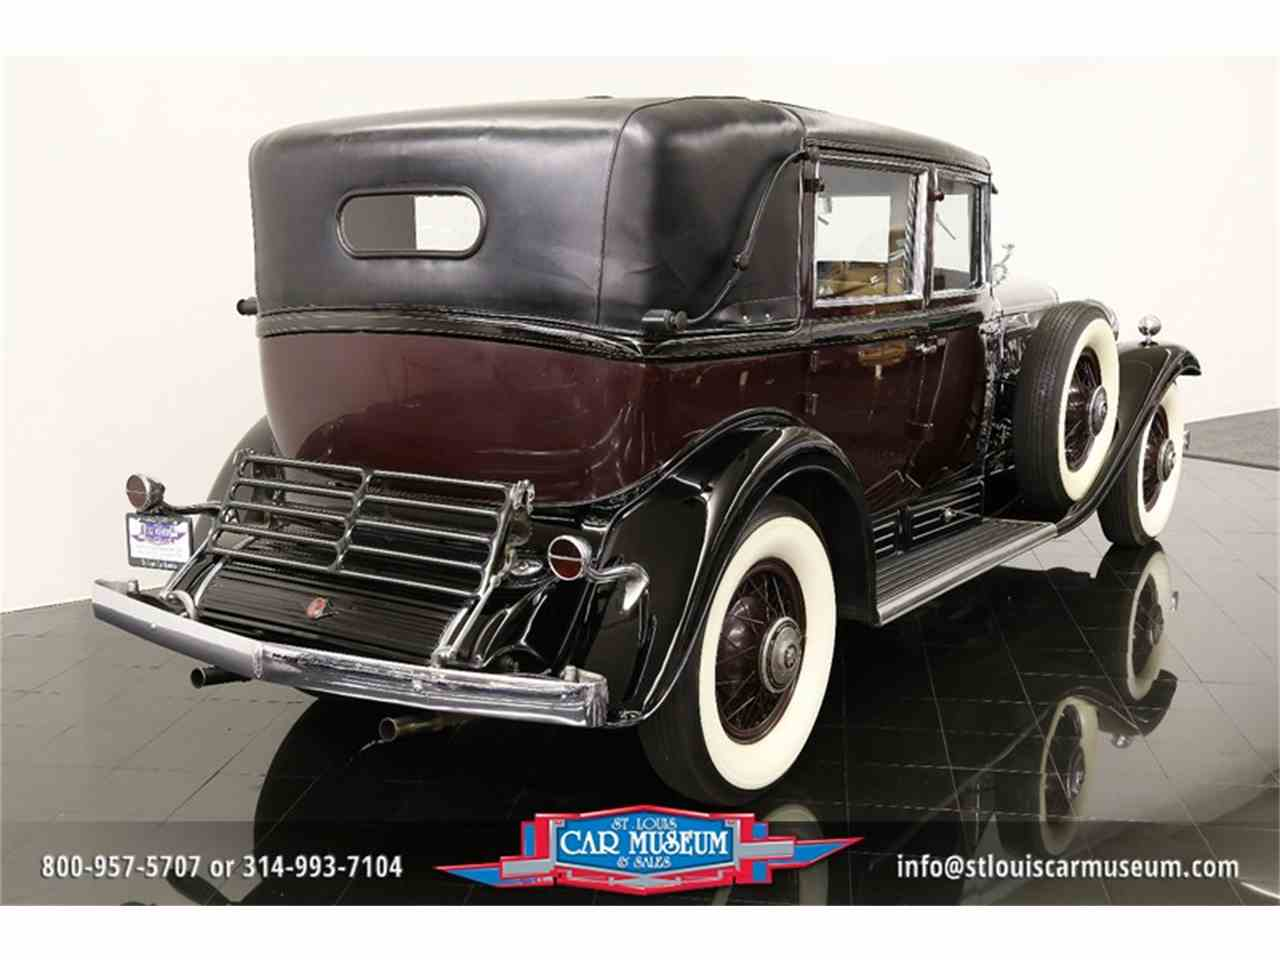 Large Picture of Classic 1931 Cadillac V-16 Madam X Landau Sedan - $374,900.00 Offered by St. Louis Car Museum - JSU3